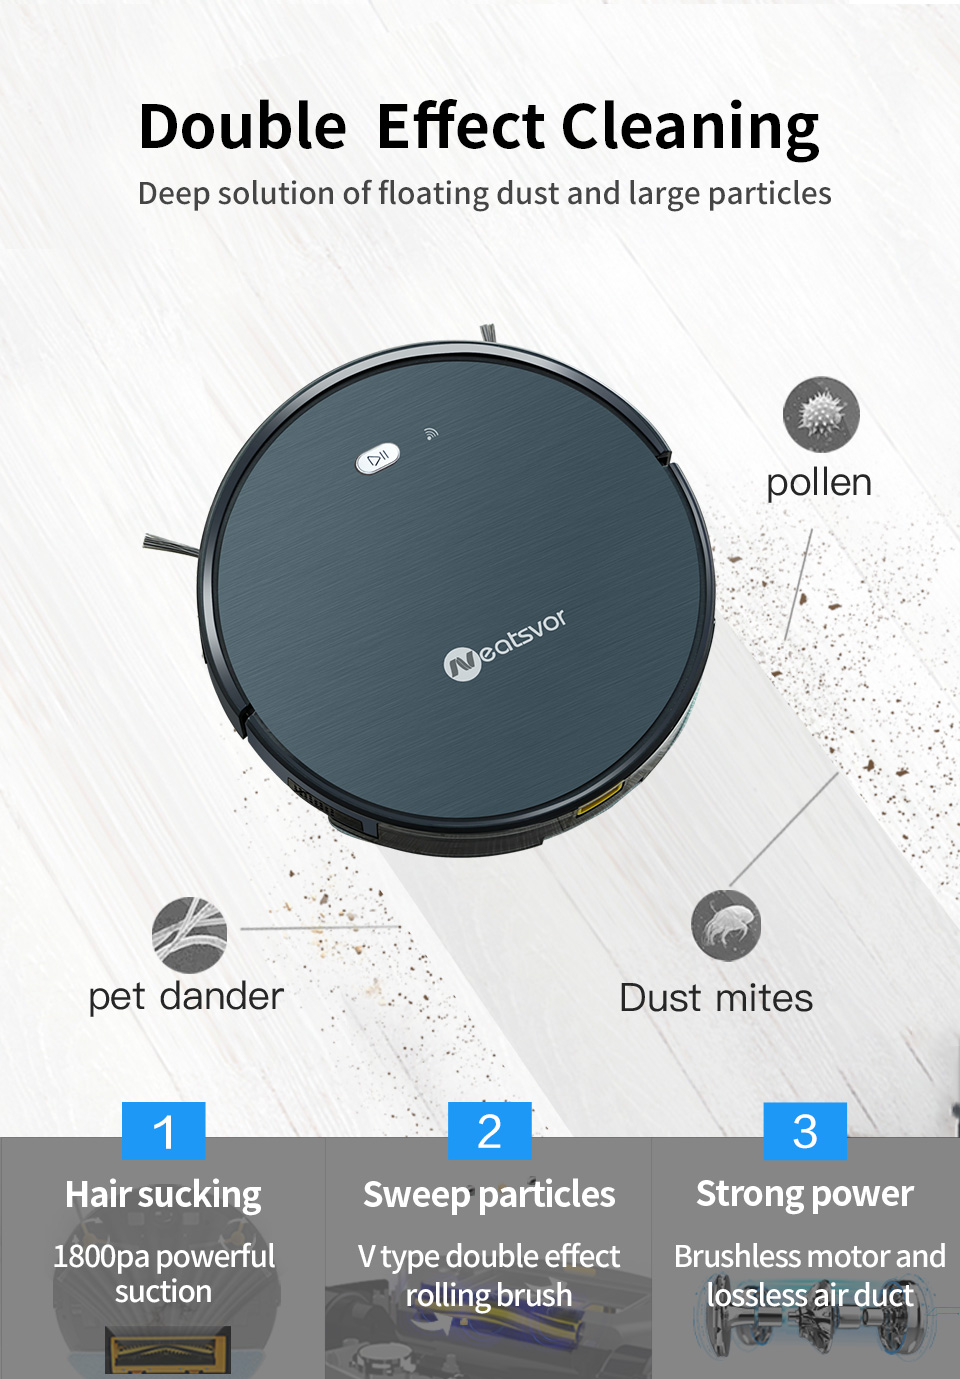 H3a971101bdc94a3589efc5dc66569a5dd NEATSVOR X500 Robot Vacuum Cleaner 1800PA Poweful Suction 3in1 pet hair home dry wet mopping cleaning robot Auto Charge vacuum